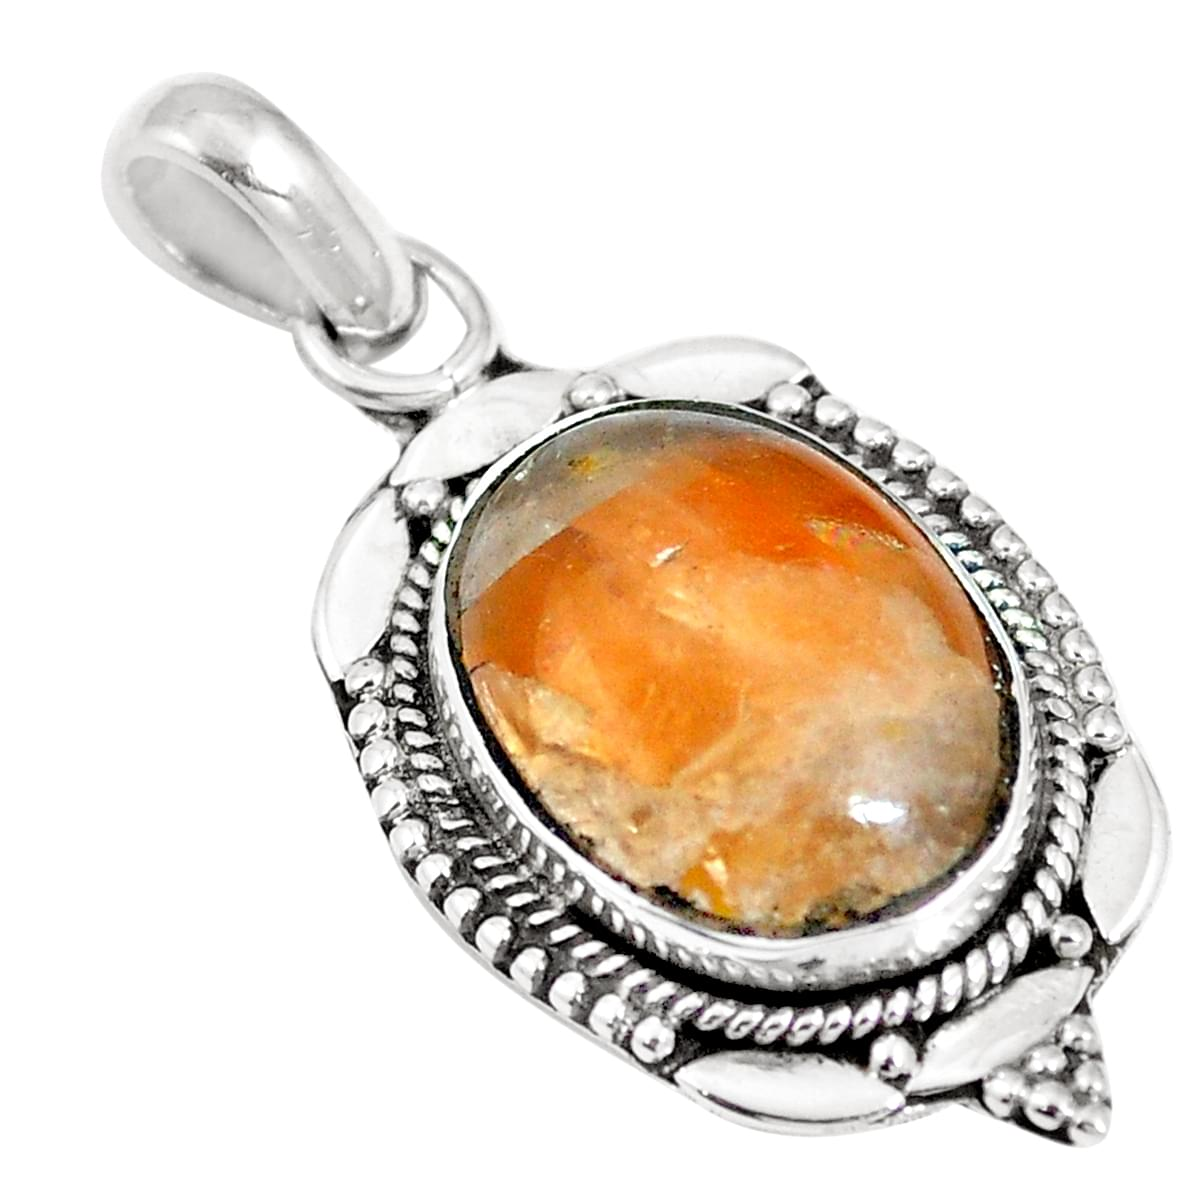 Solid 925 Sterling Silver Stylish Jewelry Natural Yellow Copper Calcite Gemstone Pendant